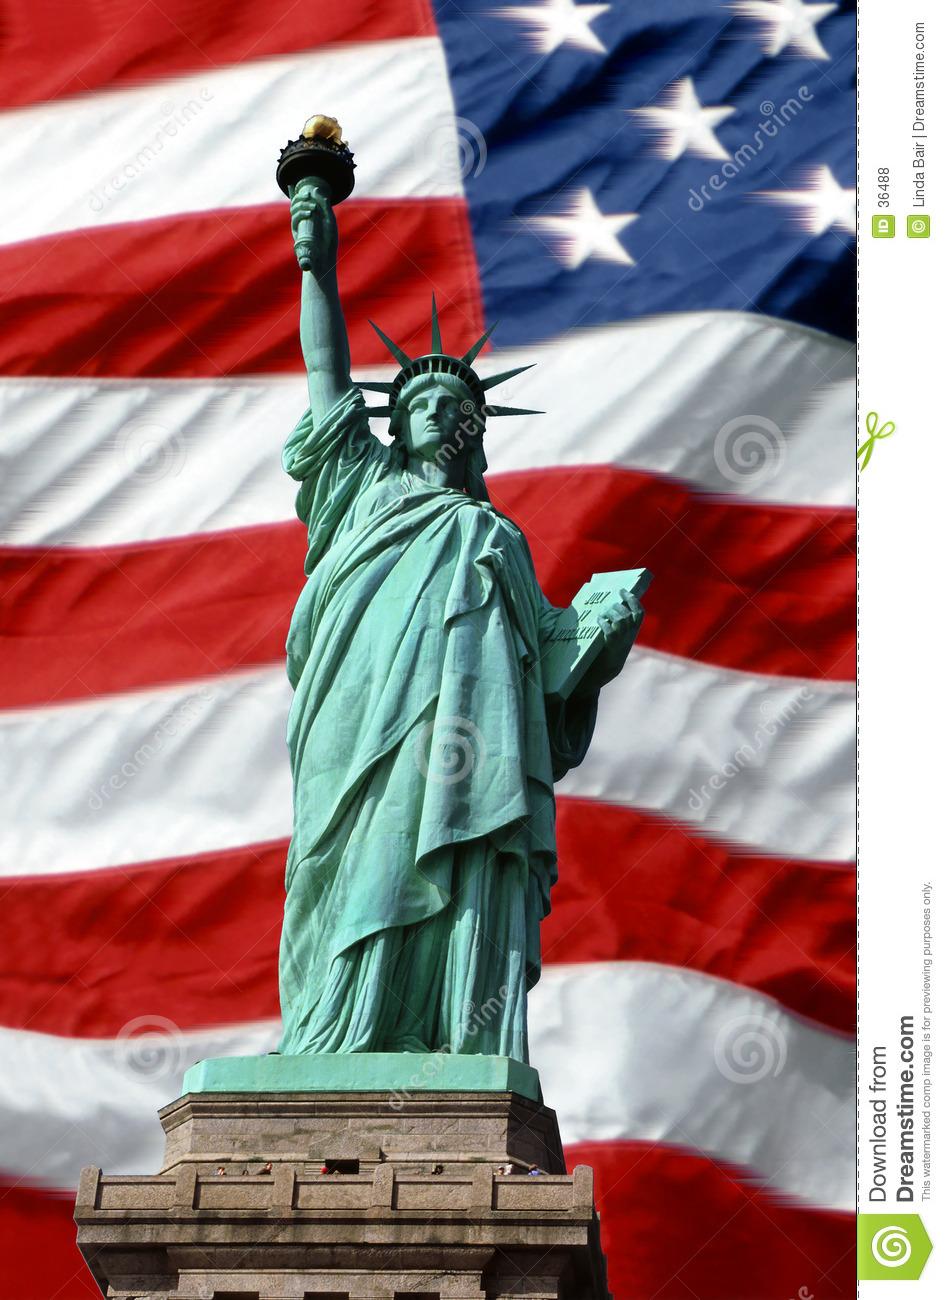 American Symbols Of Freedom Royalty Free Stock Photos - Image: 36488